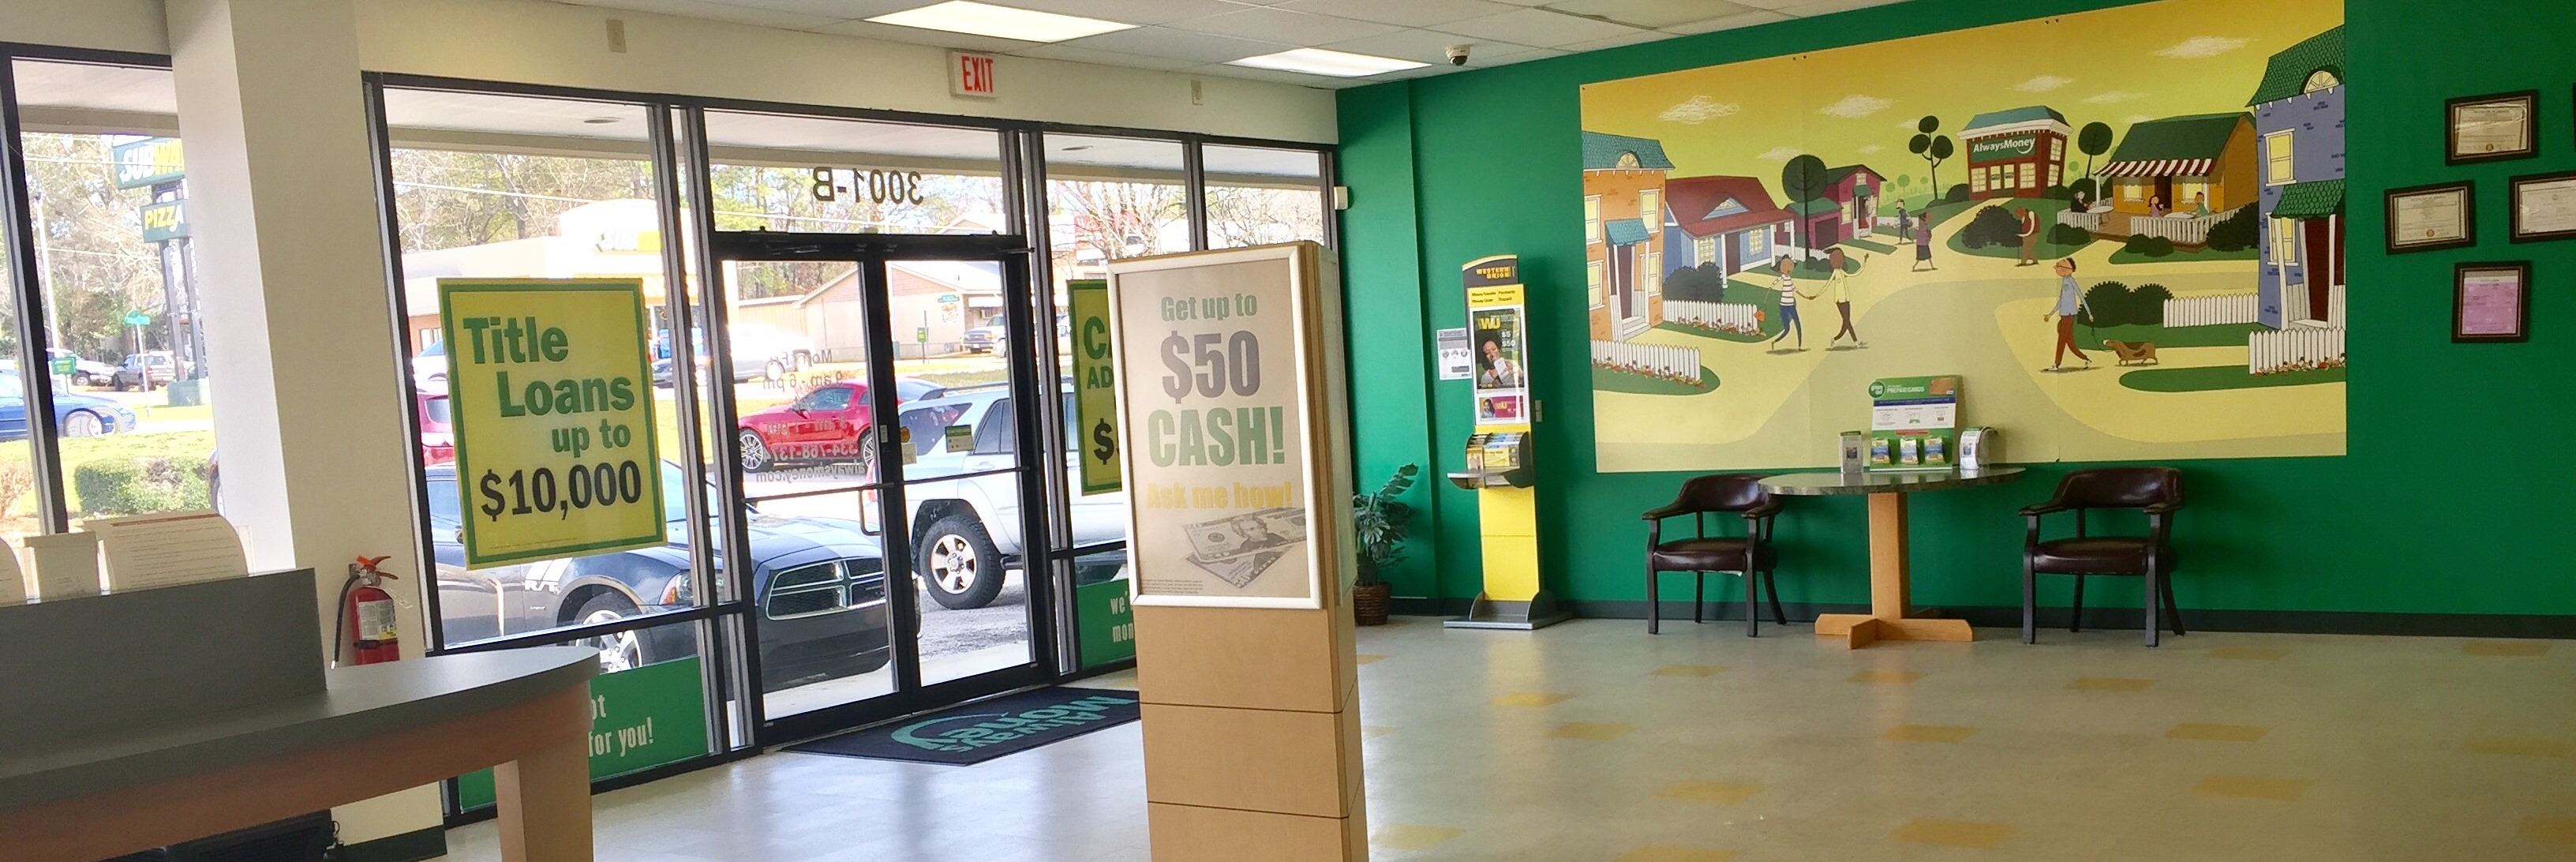 The difference between a payday loan and an installment loan